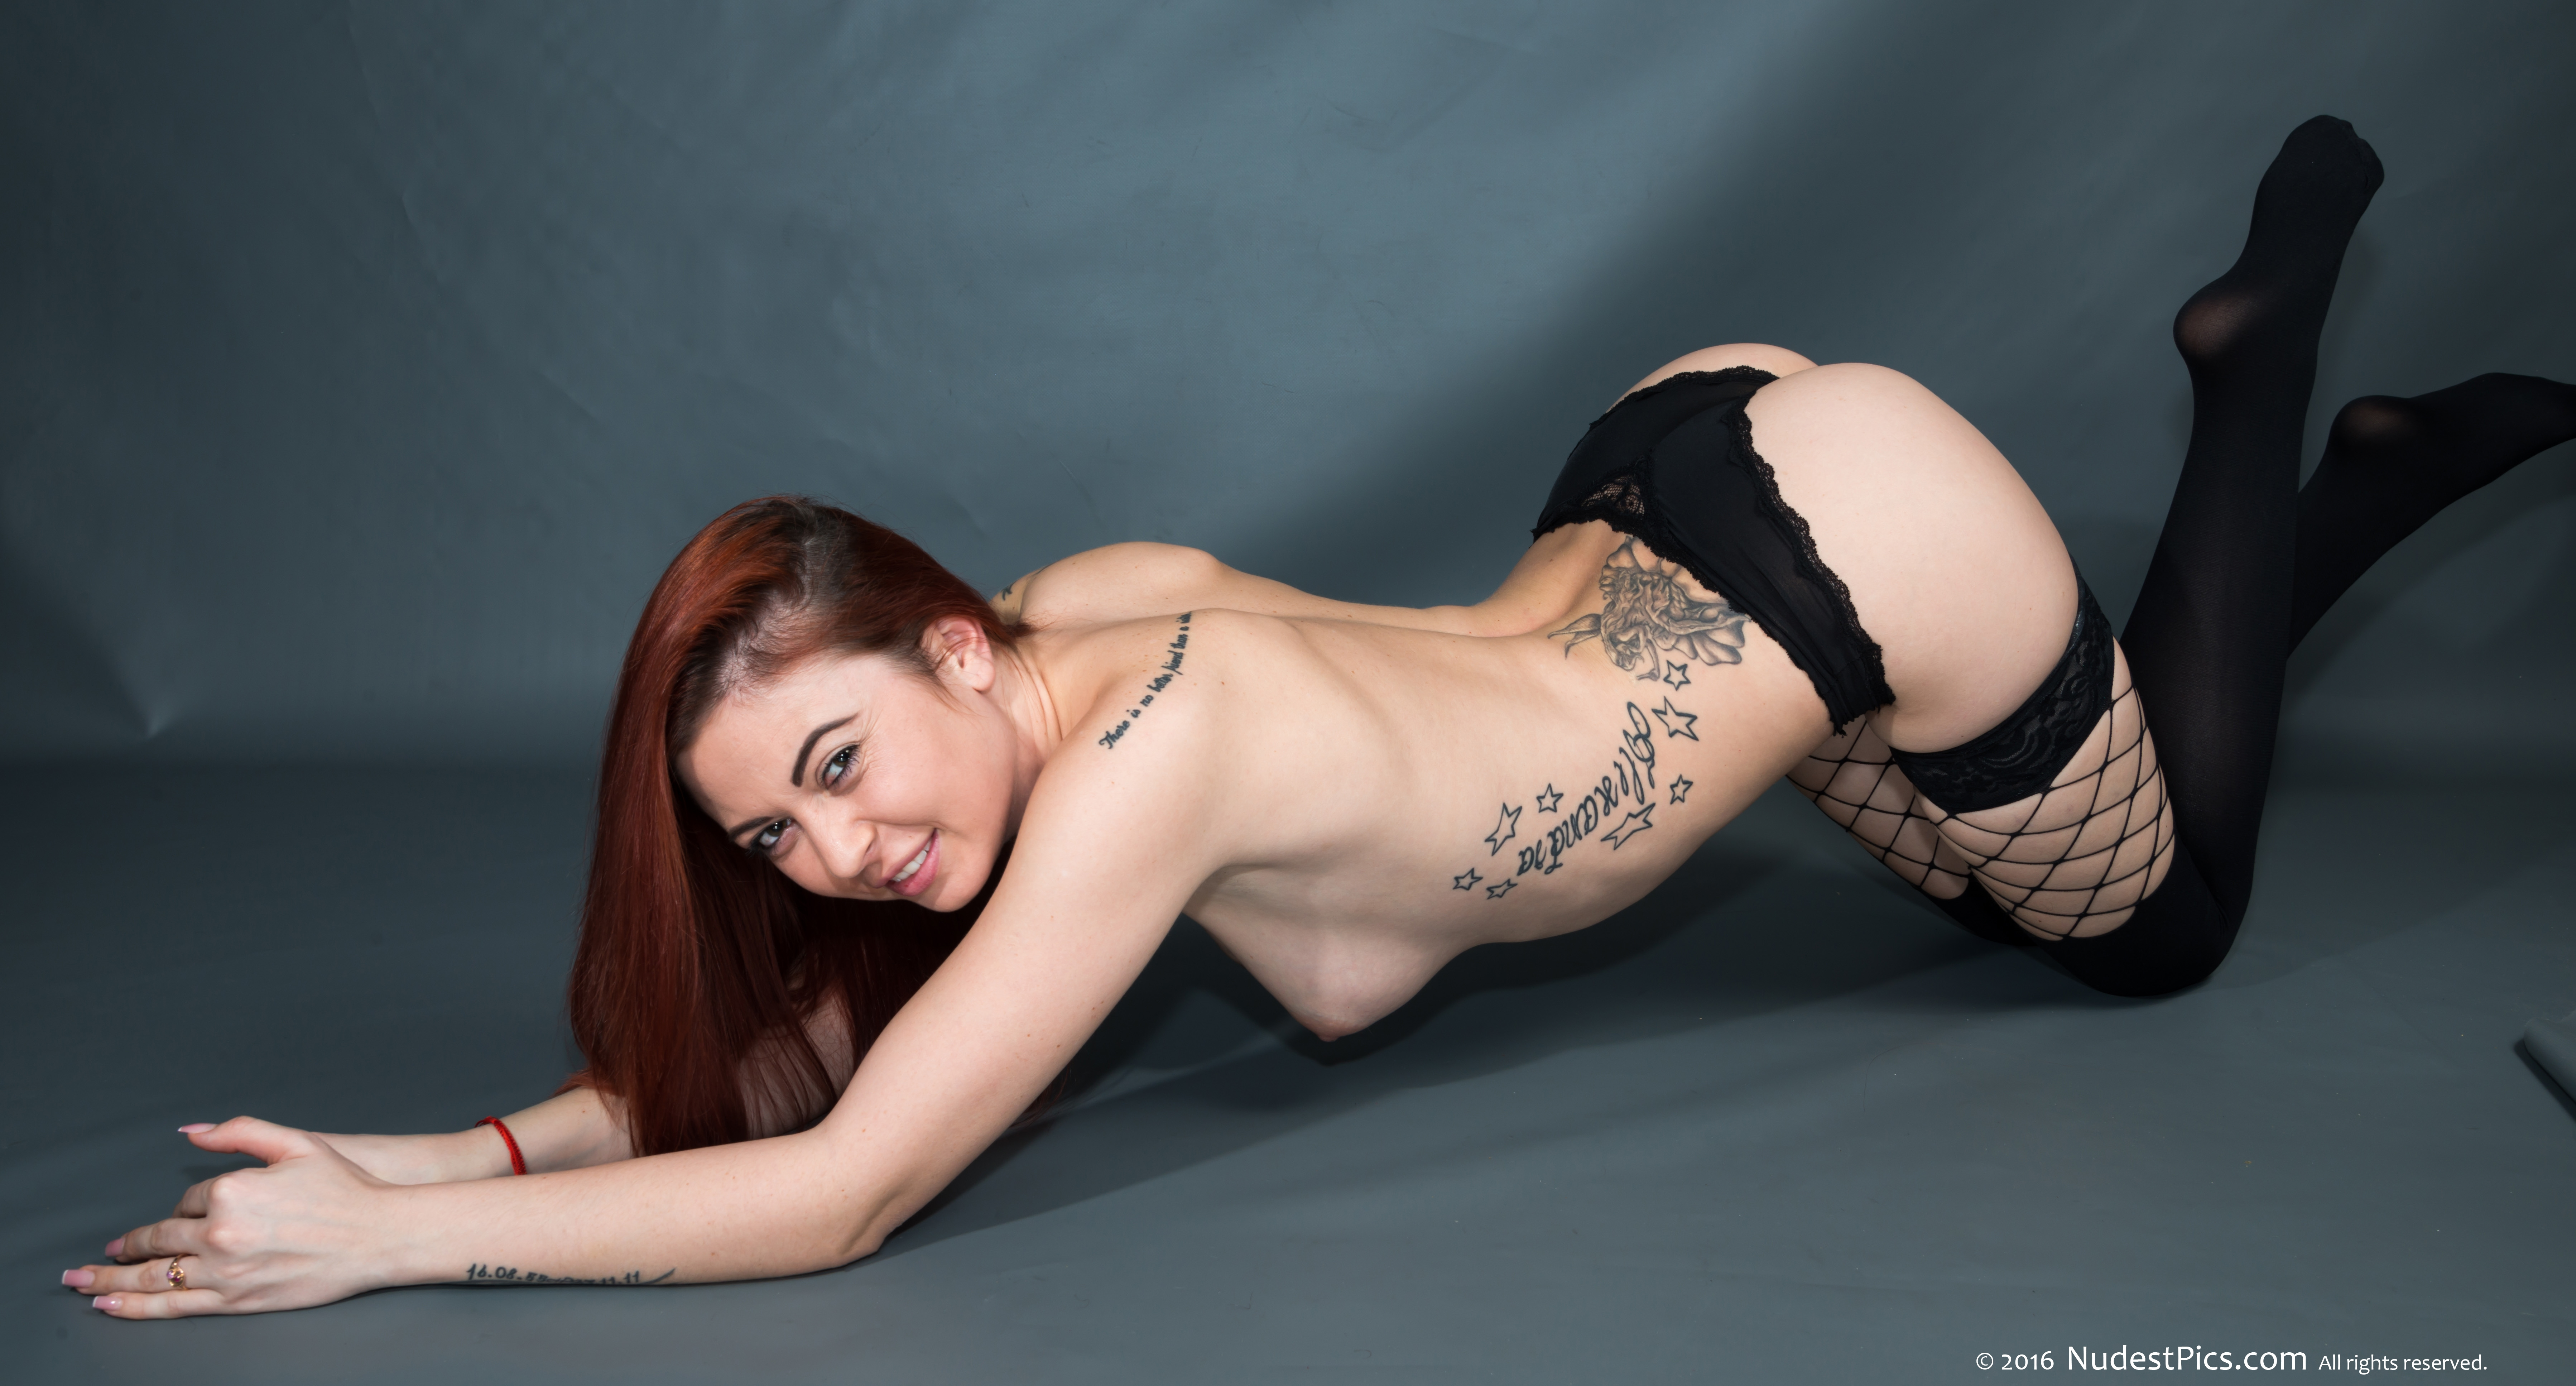 Tattooed Babe Topless Sexy Lingerie Crawling